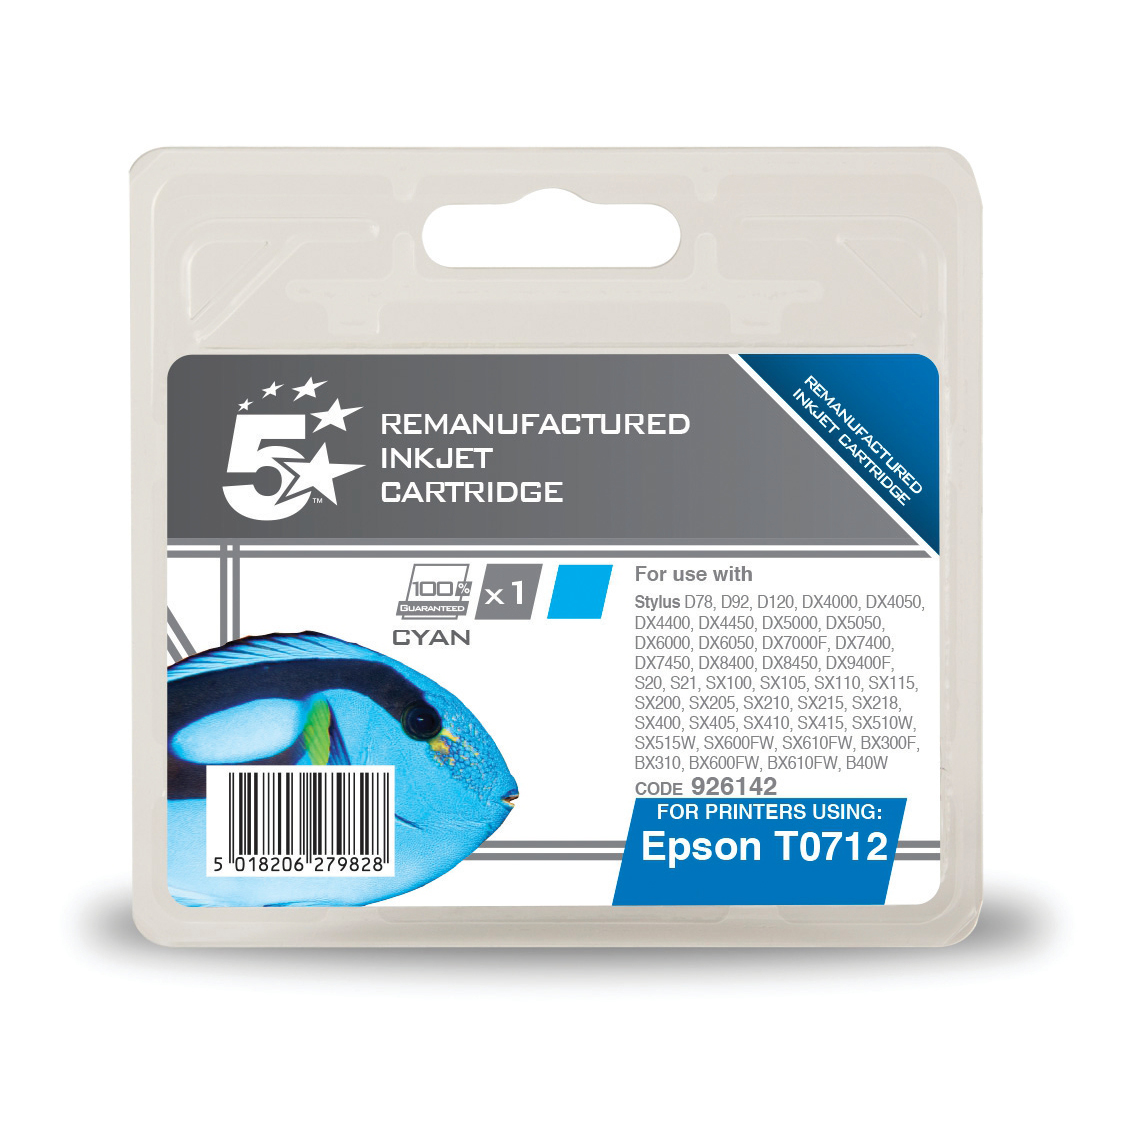 5 Star Office Remanufactured Inkjet Cartridge 495pp 5.5ml Cyan [Epson T071240 Alternative]